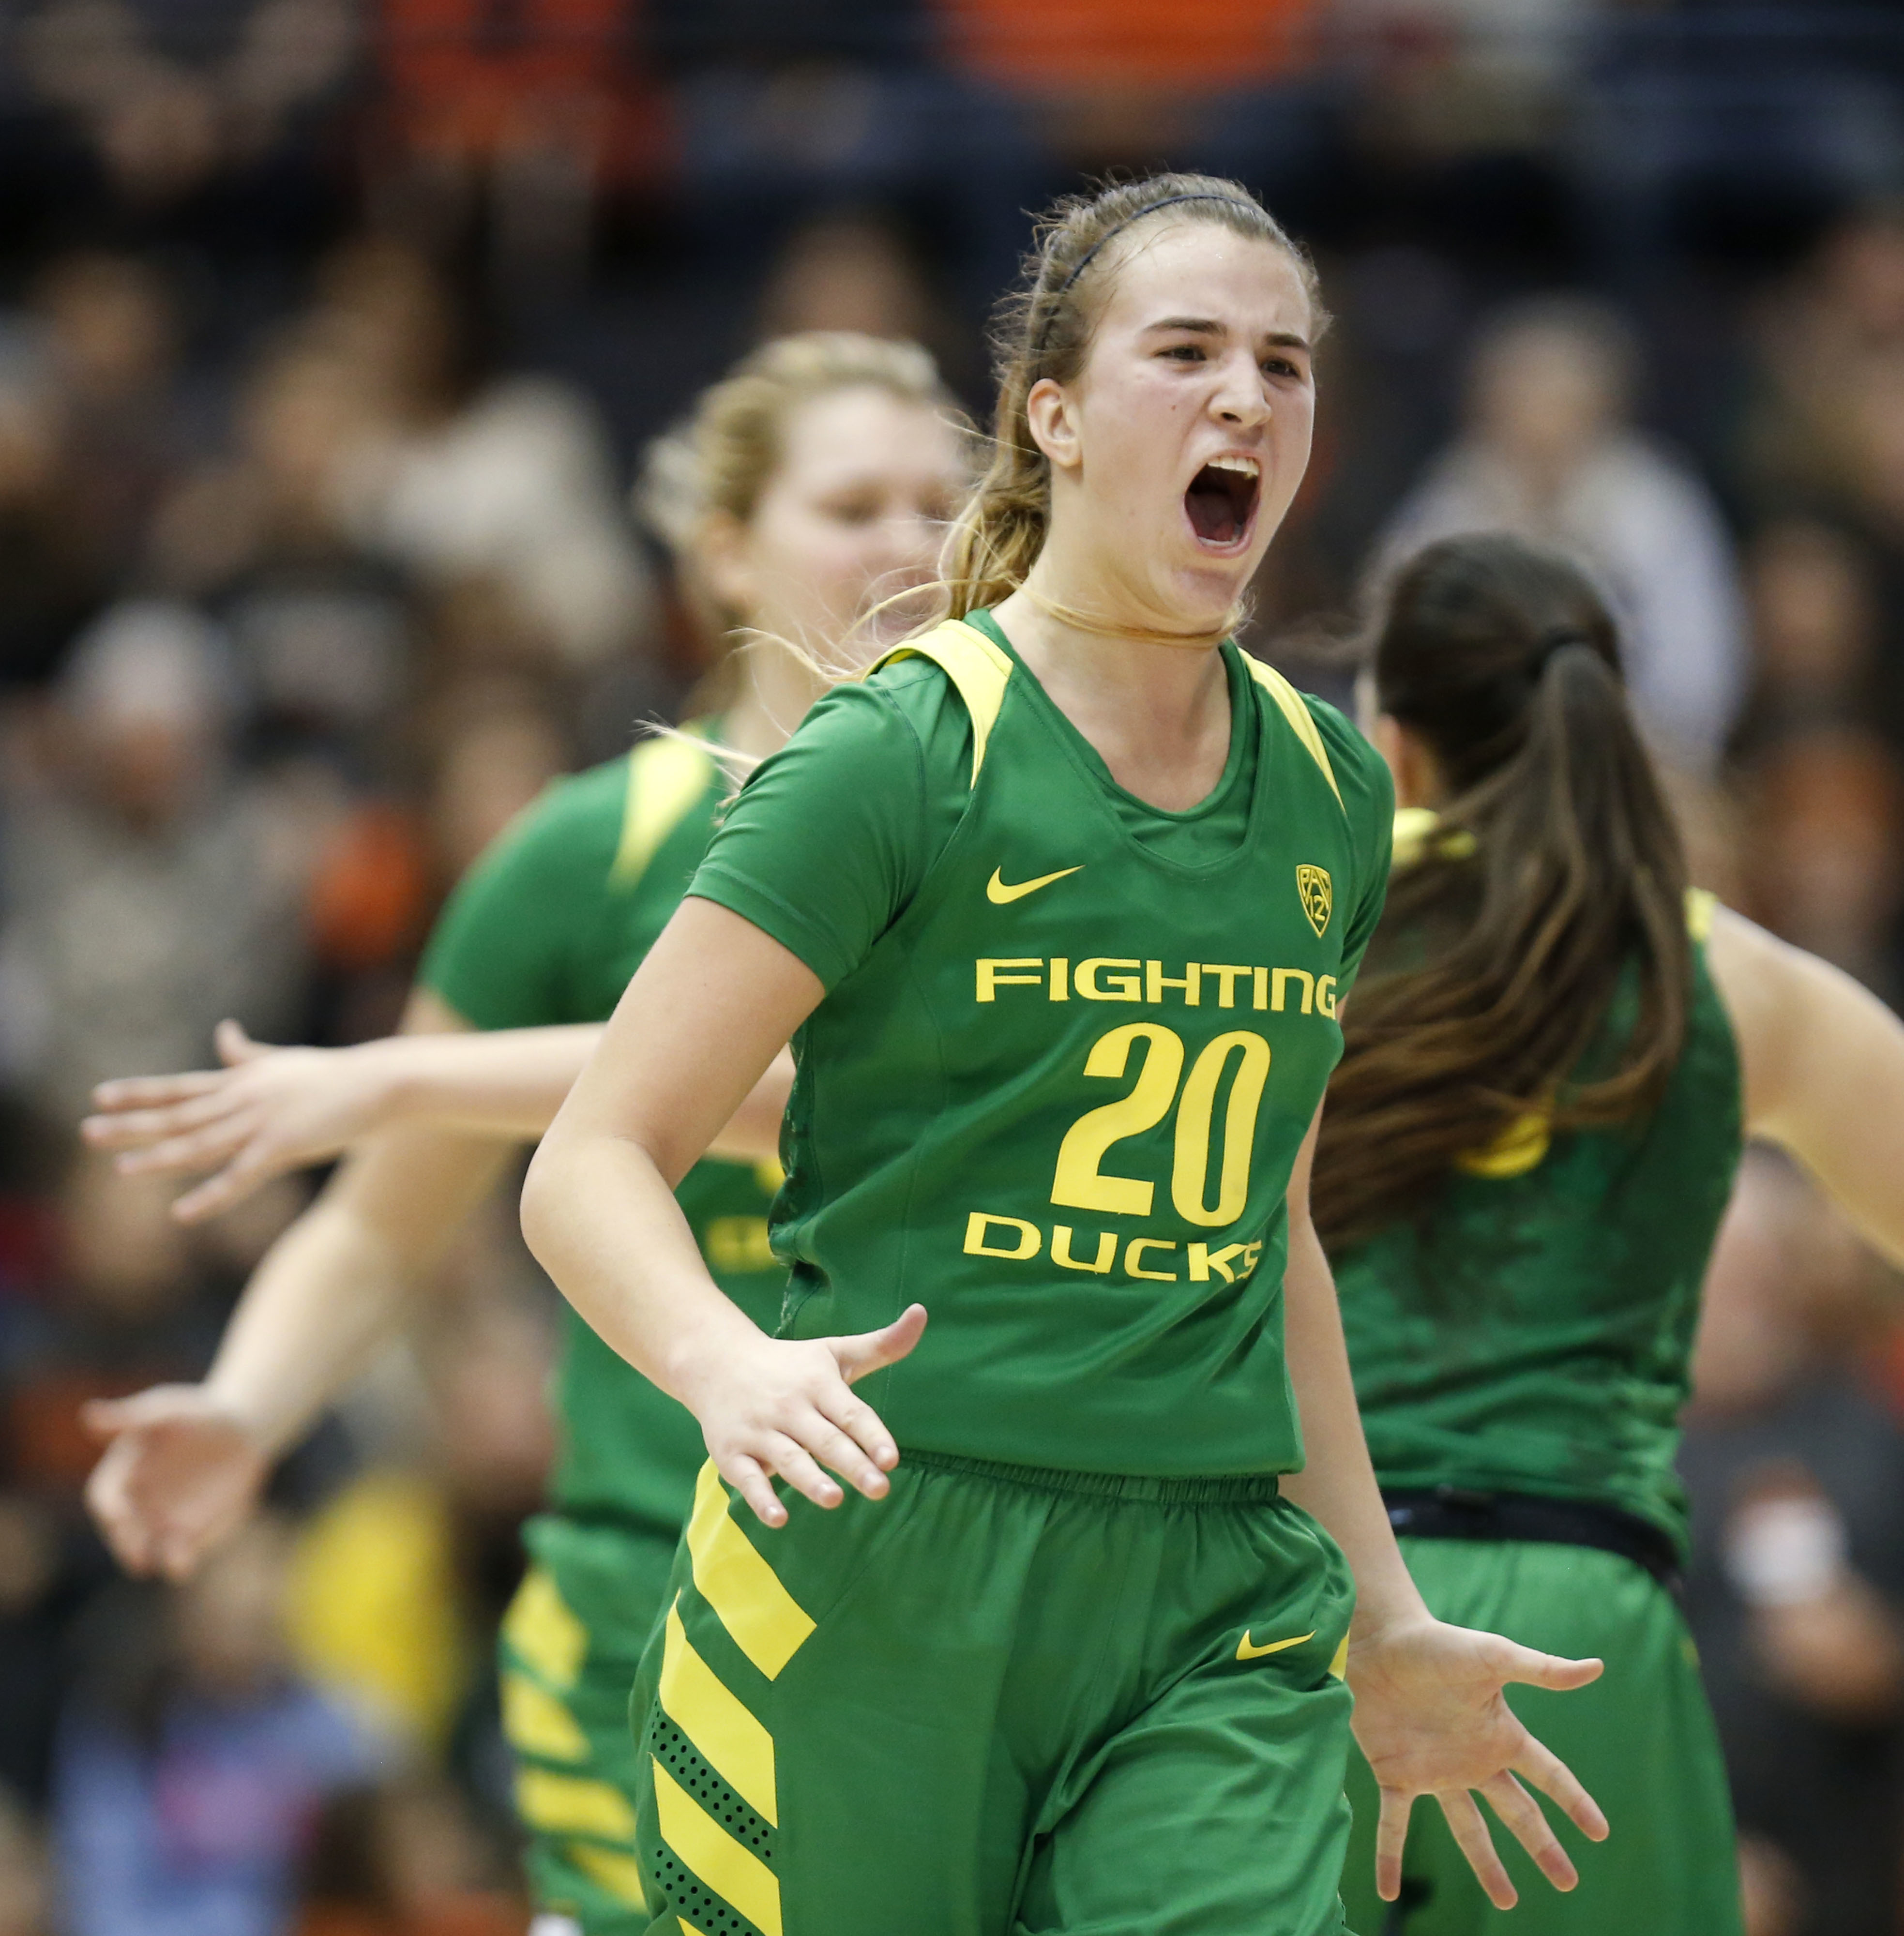 In this Jan. 29, 2017 photo, Oregon's Sabrina Ionescu yells as she comes to the bench during an NCAA college basketball game against Oregon State in Corvallis, Ore. With four triple-doubles this season, Oregon's 5-foot-10 guard is a driving force behind t